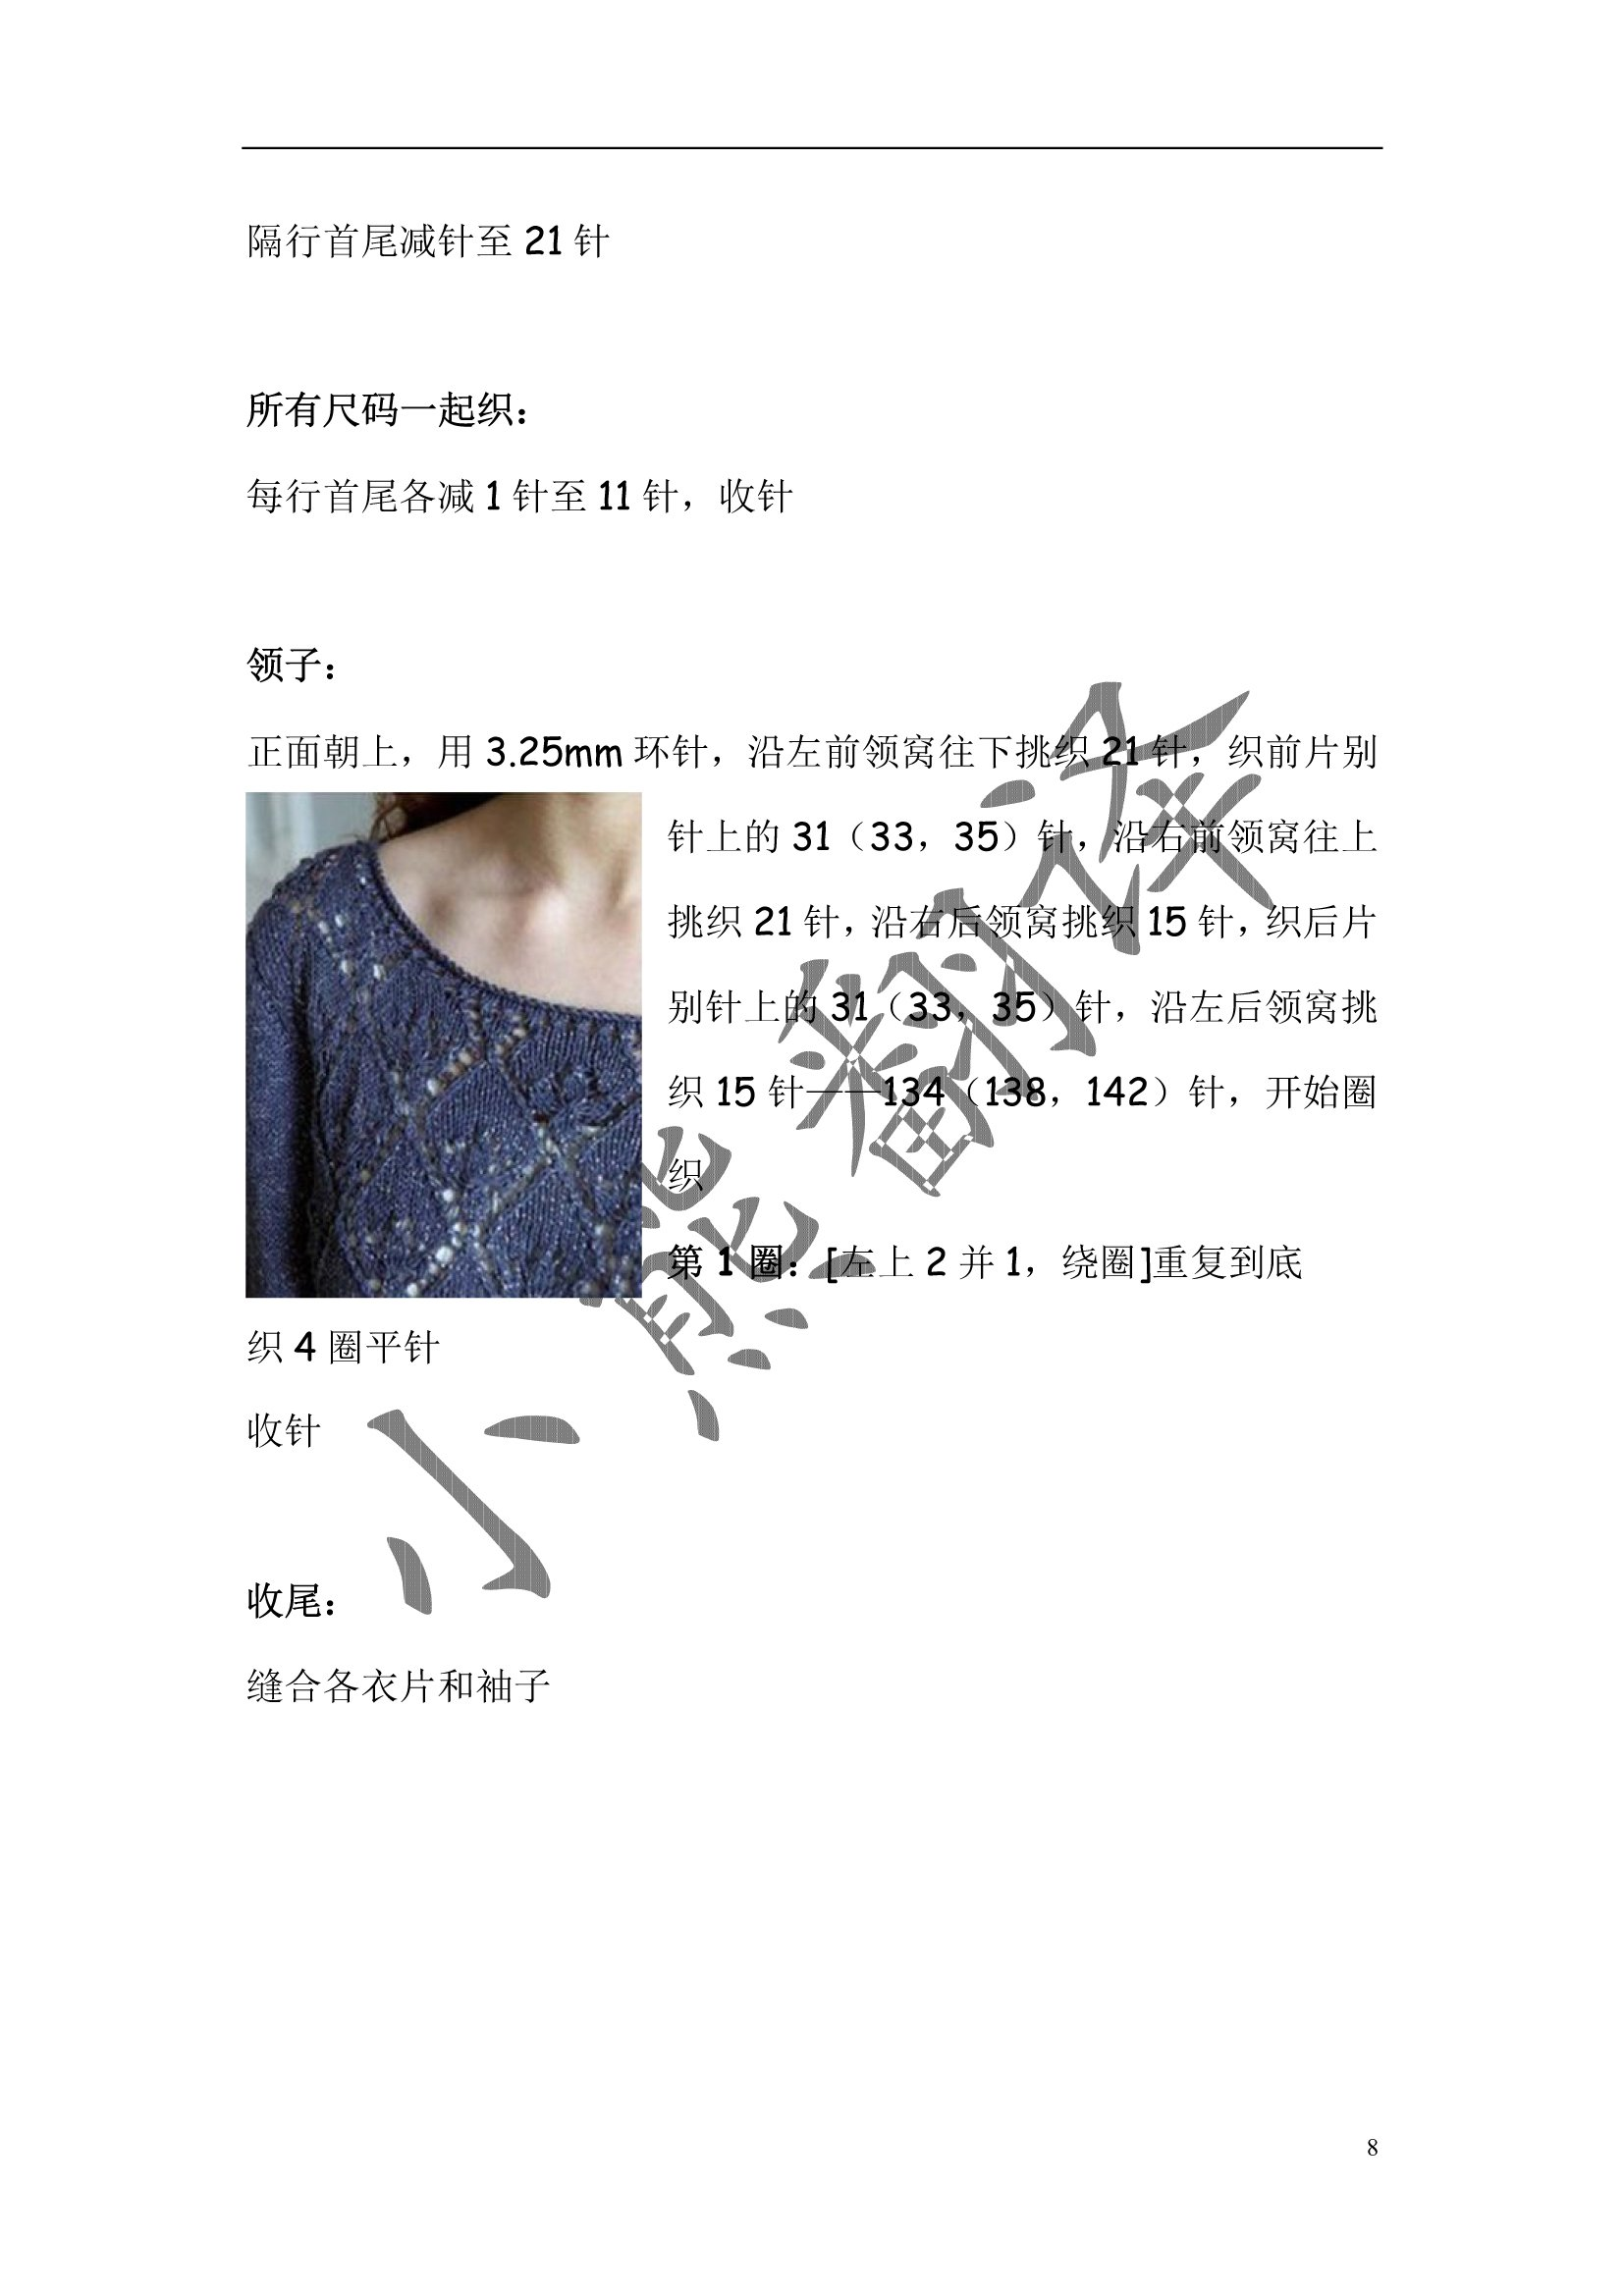 Microsoft Word - Waterlily Lace Jumper8 拷贝.jpg